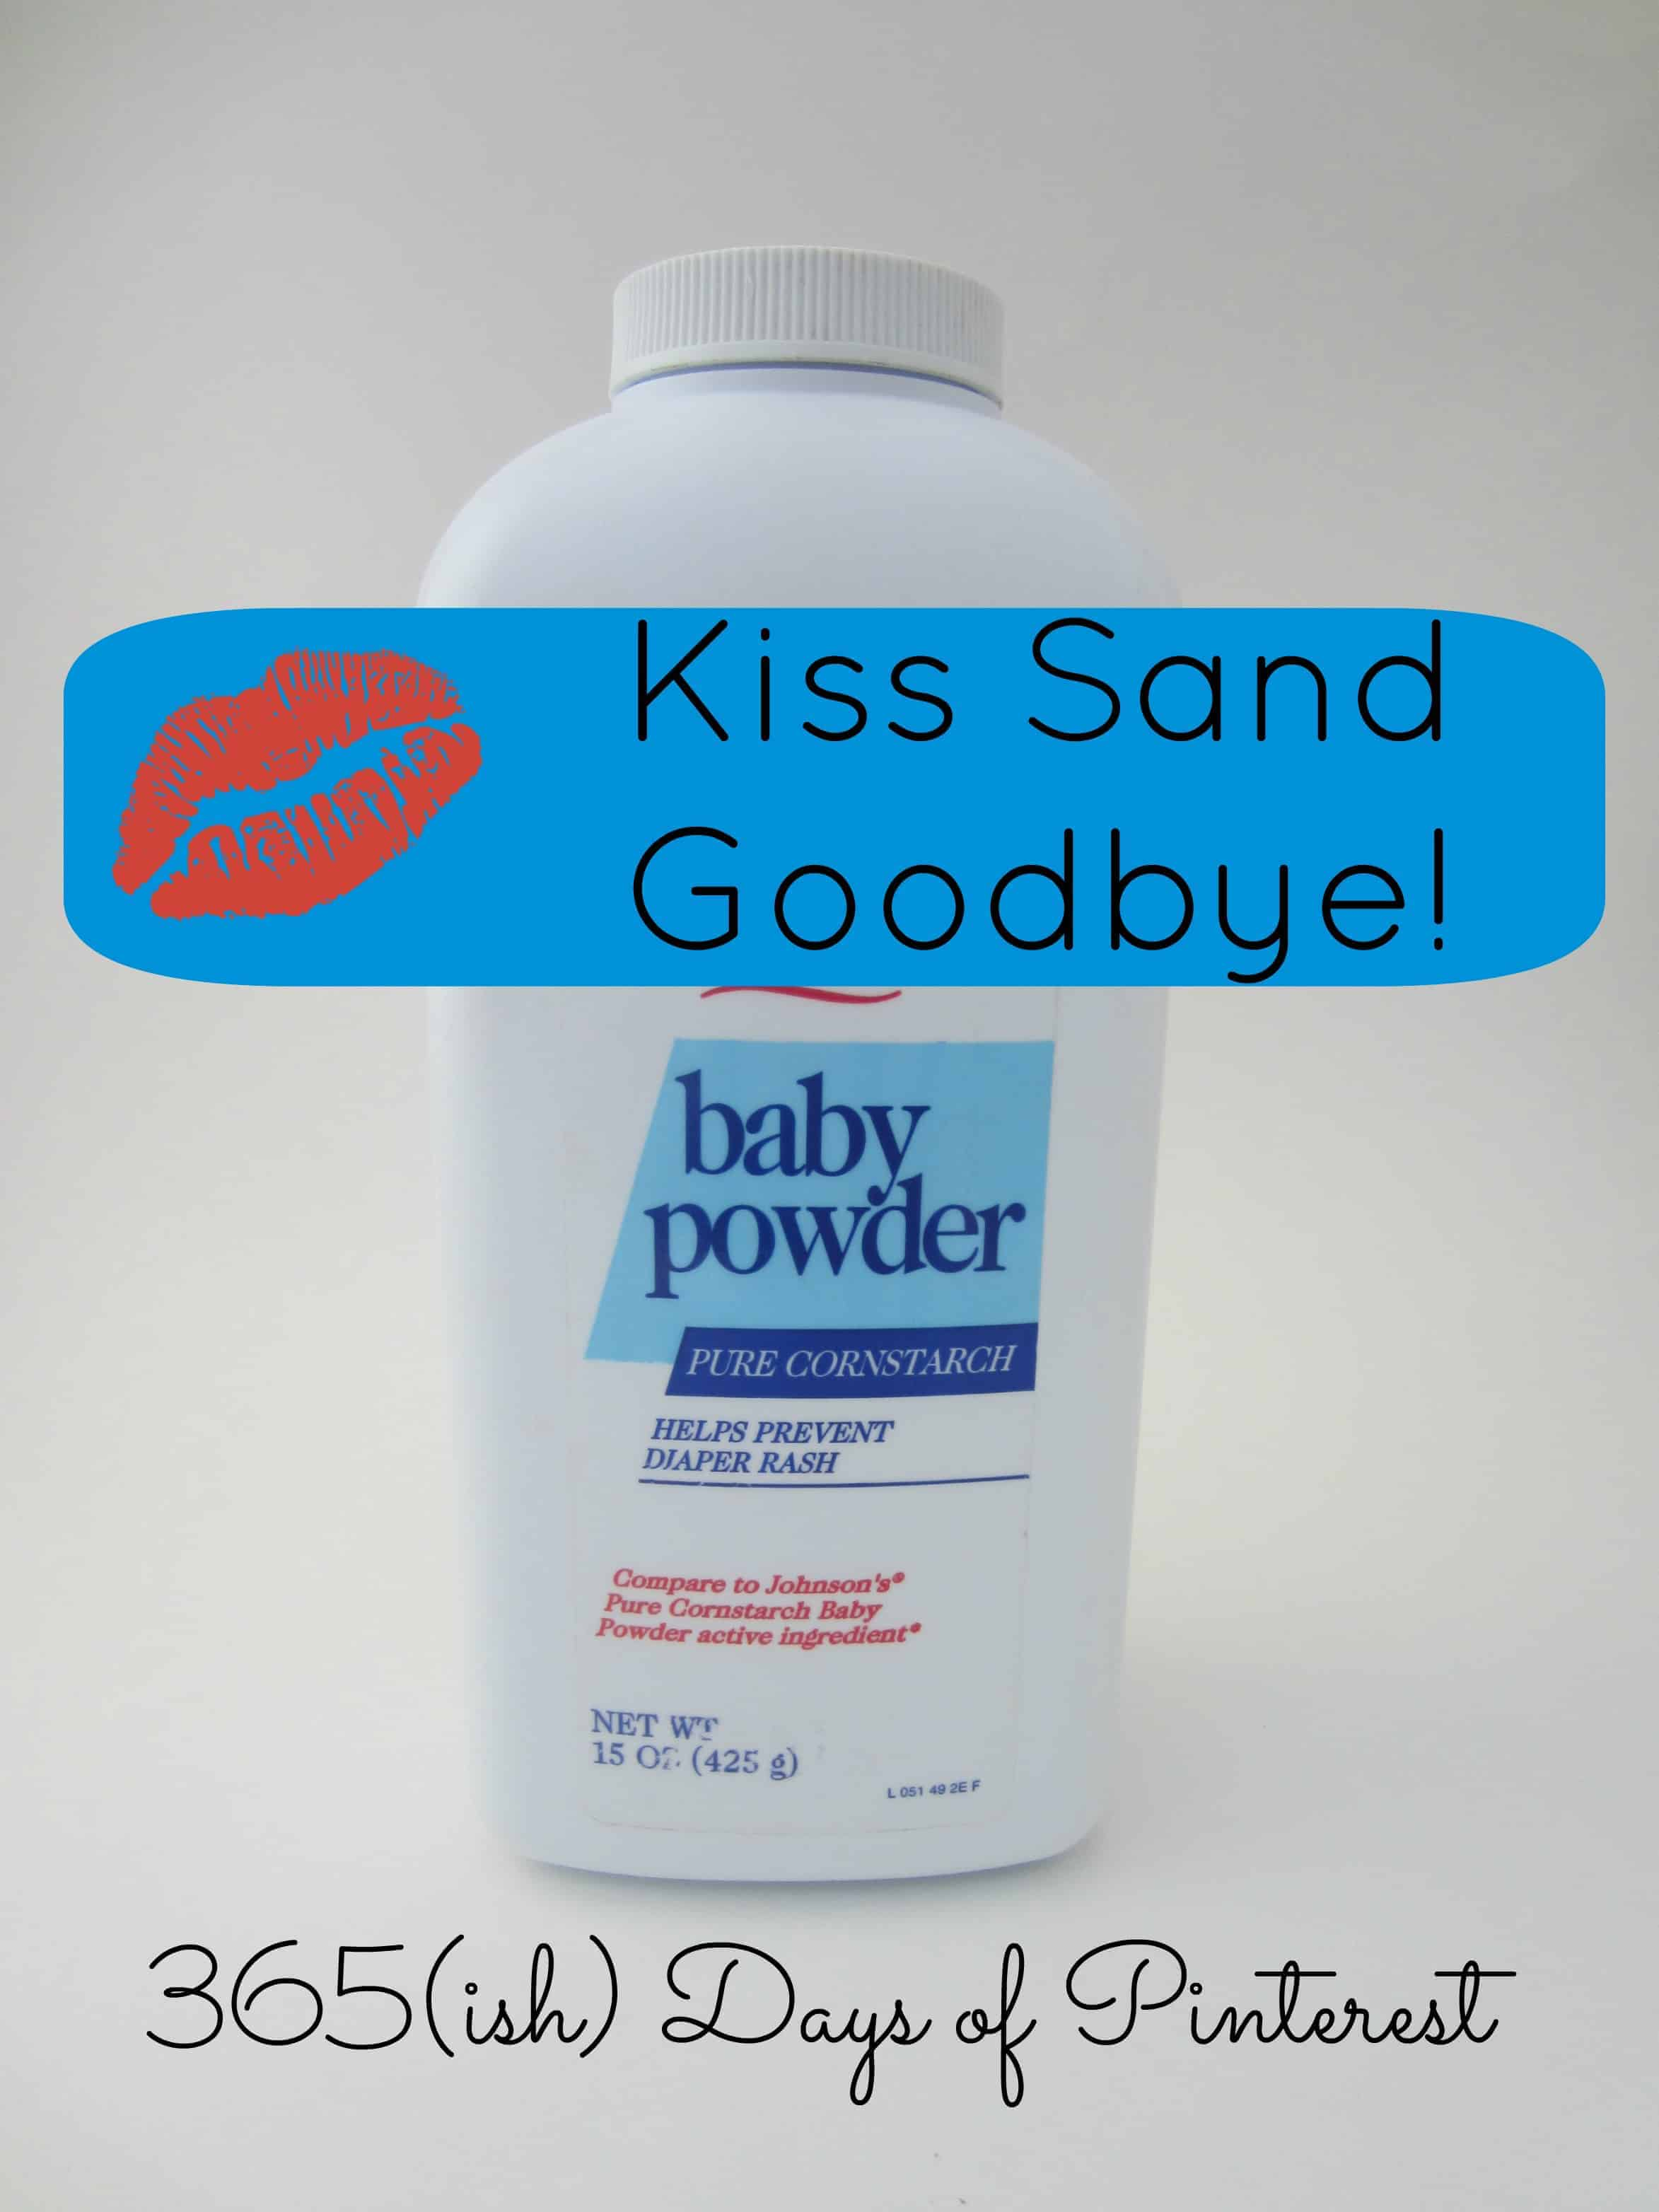 Day 280: Use Baby Powder to Remove Sand